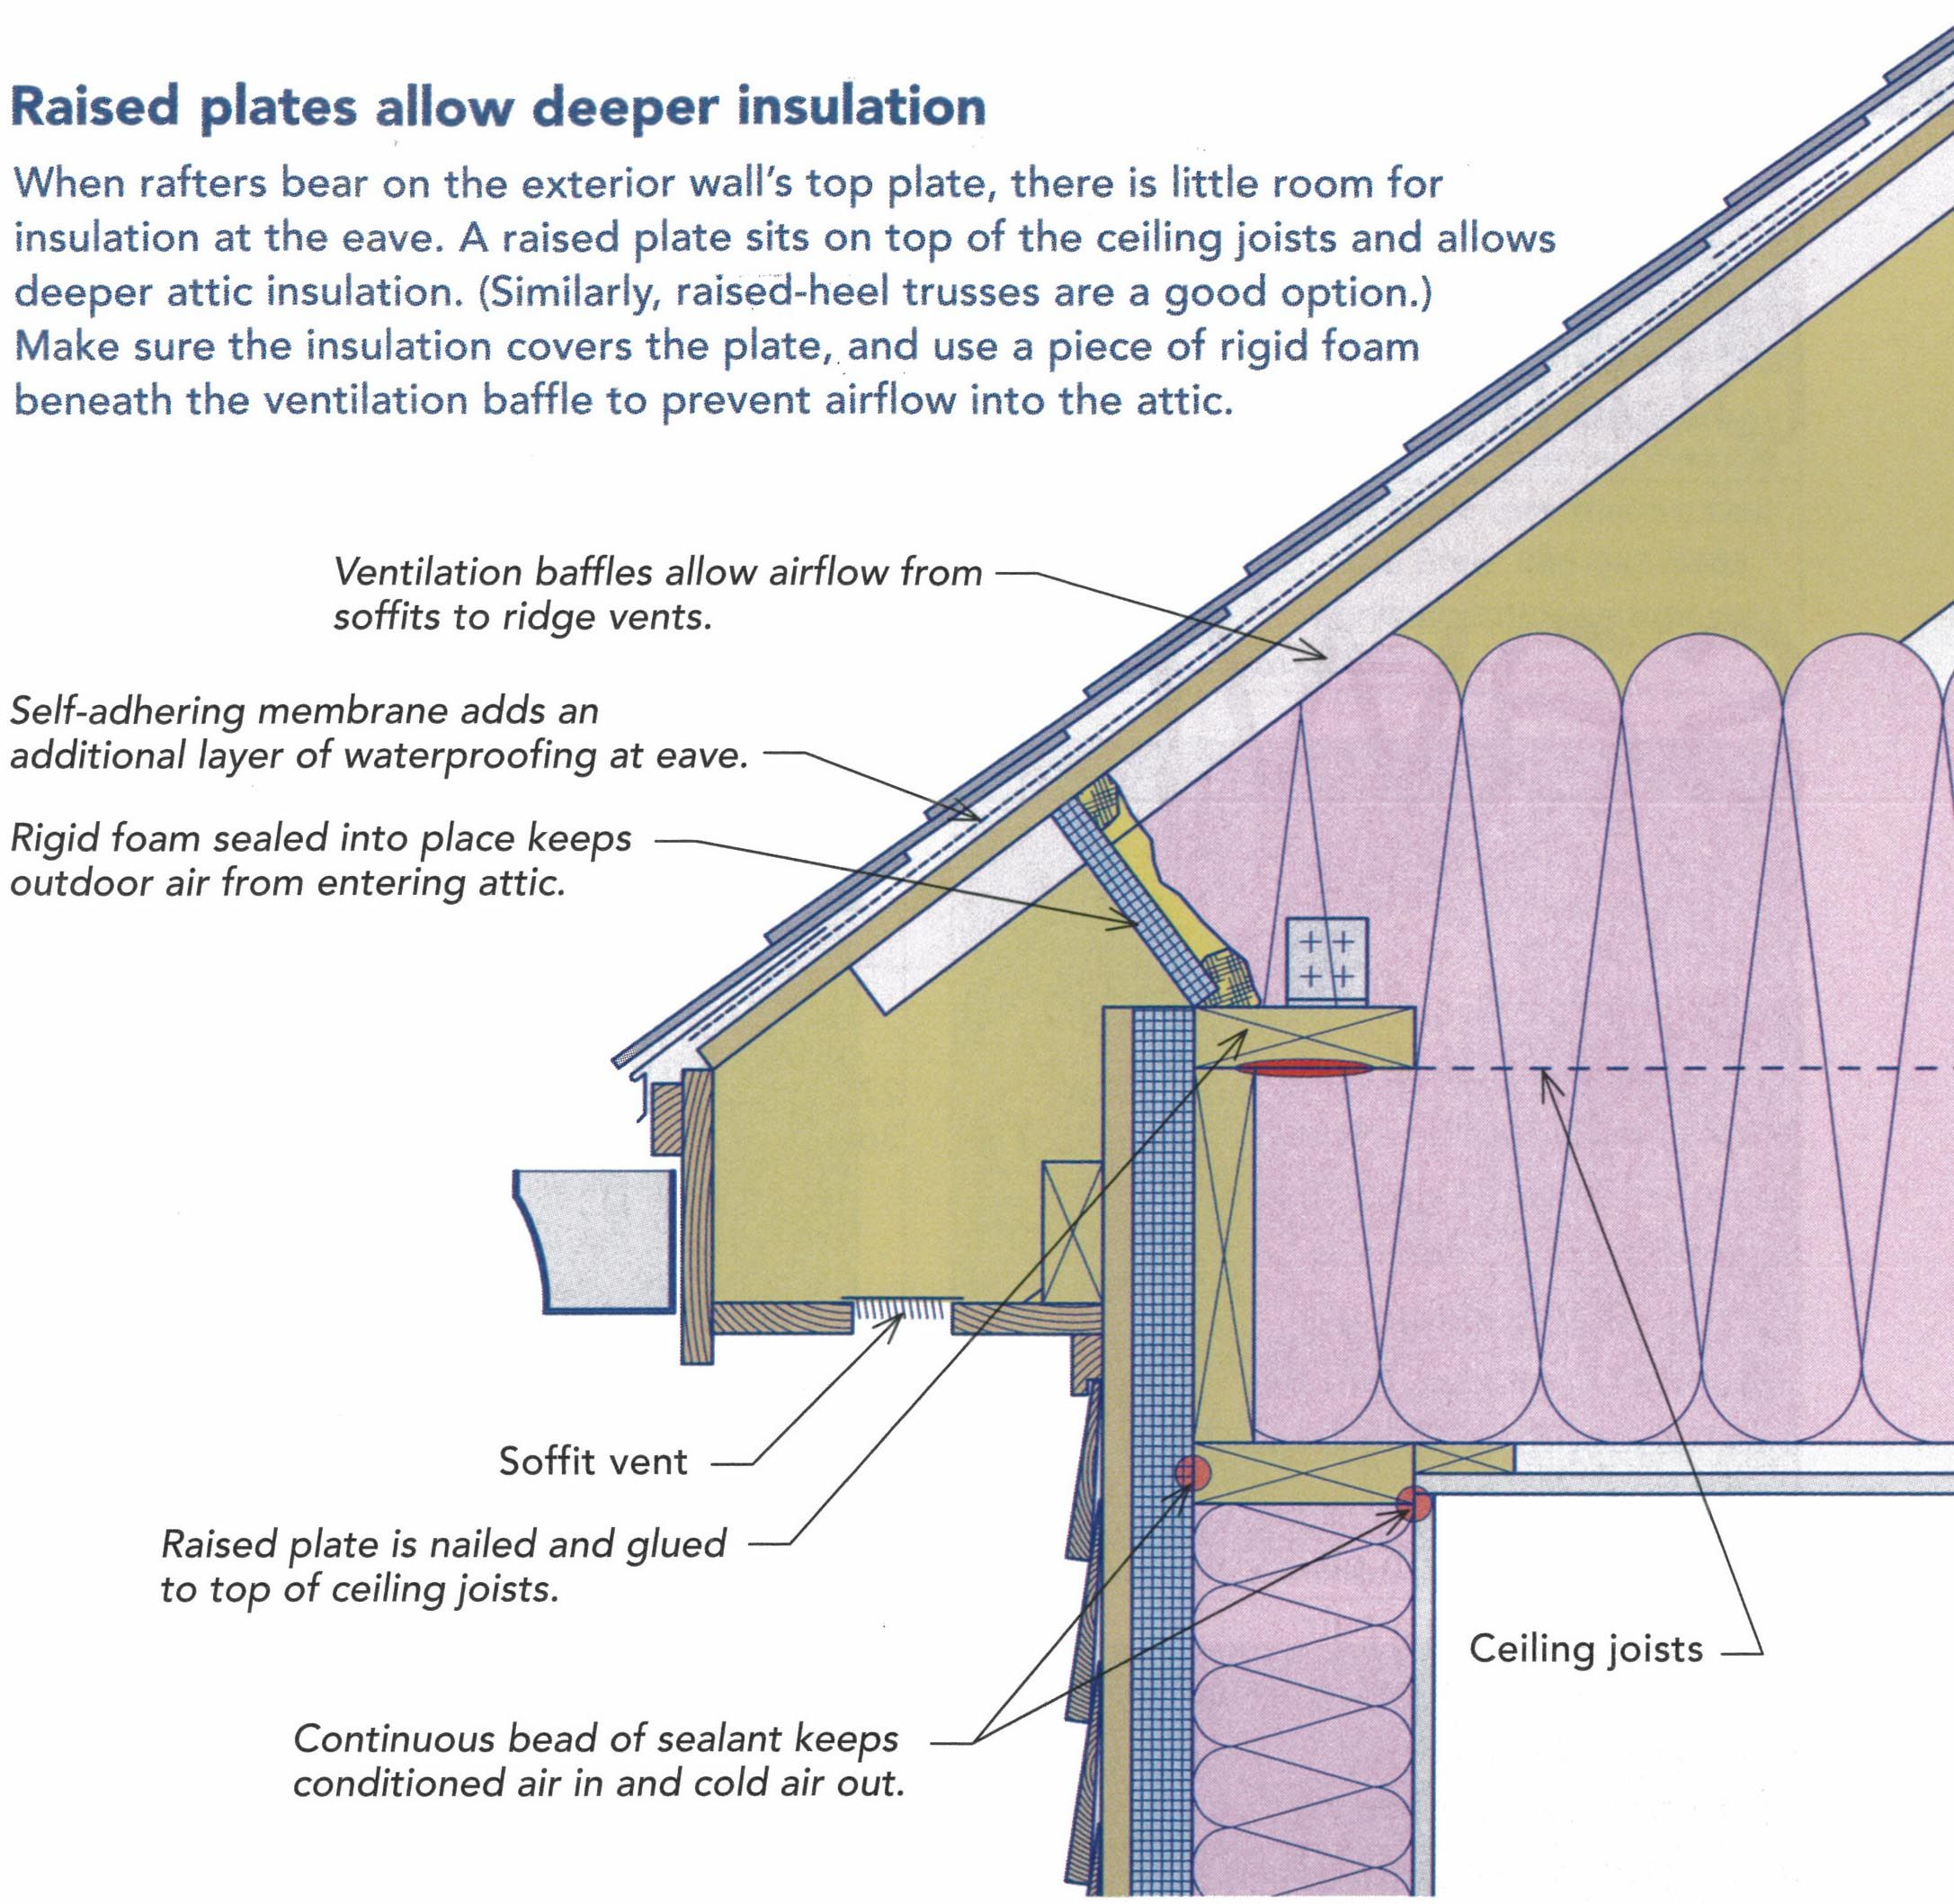 Raise plate insulation architectural reference pinterest insulation for Exterior roof insulation products